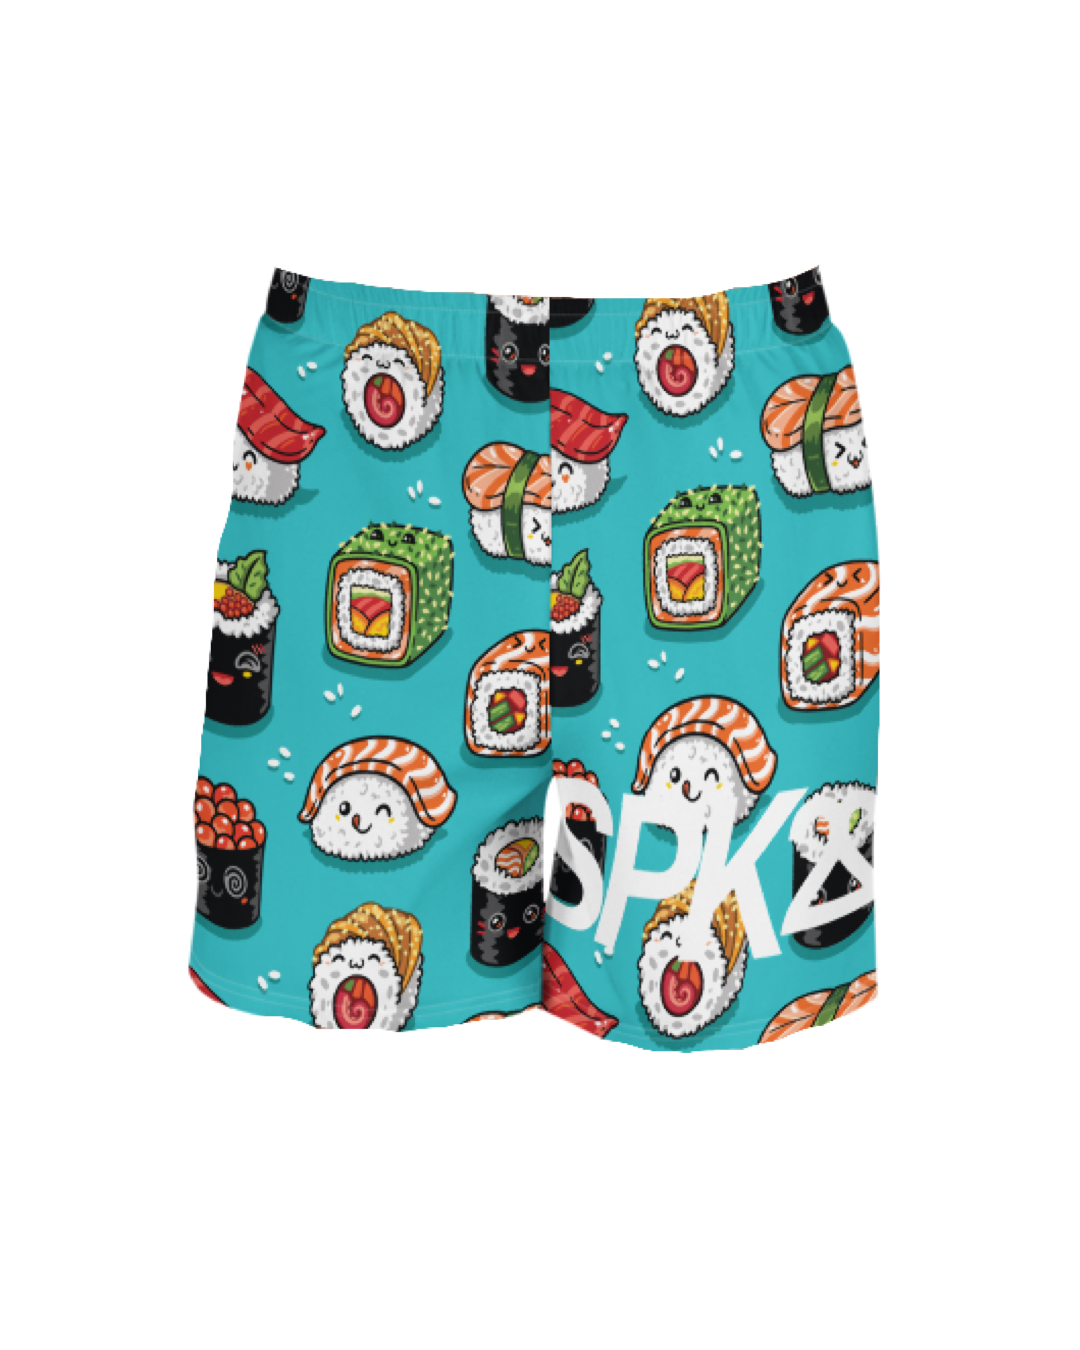 SPK22 Sushi Gang Athletic Shorts